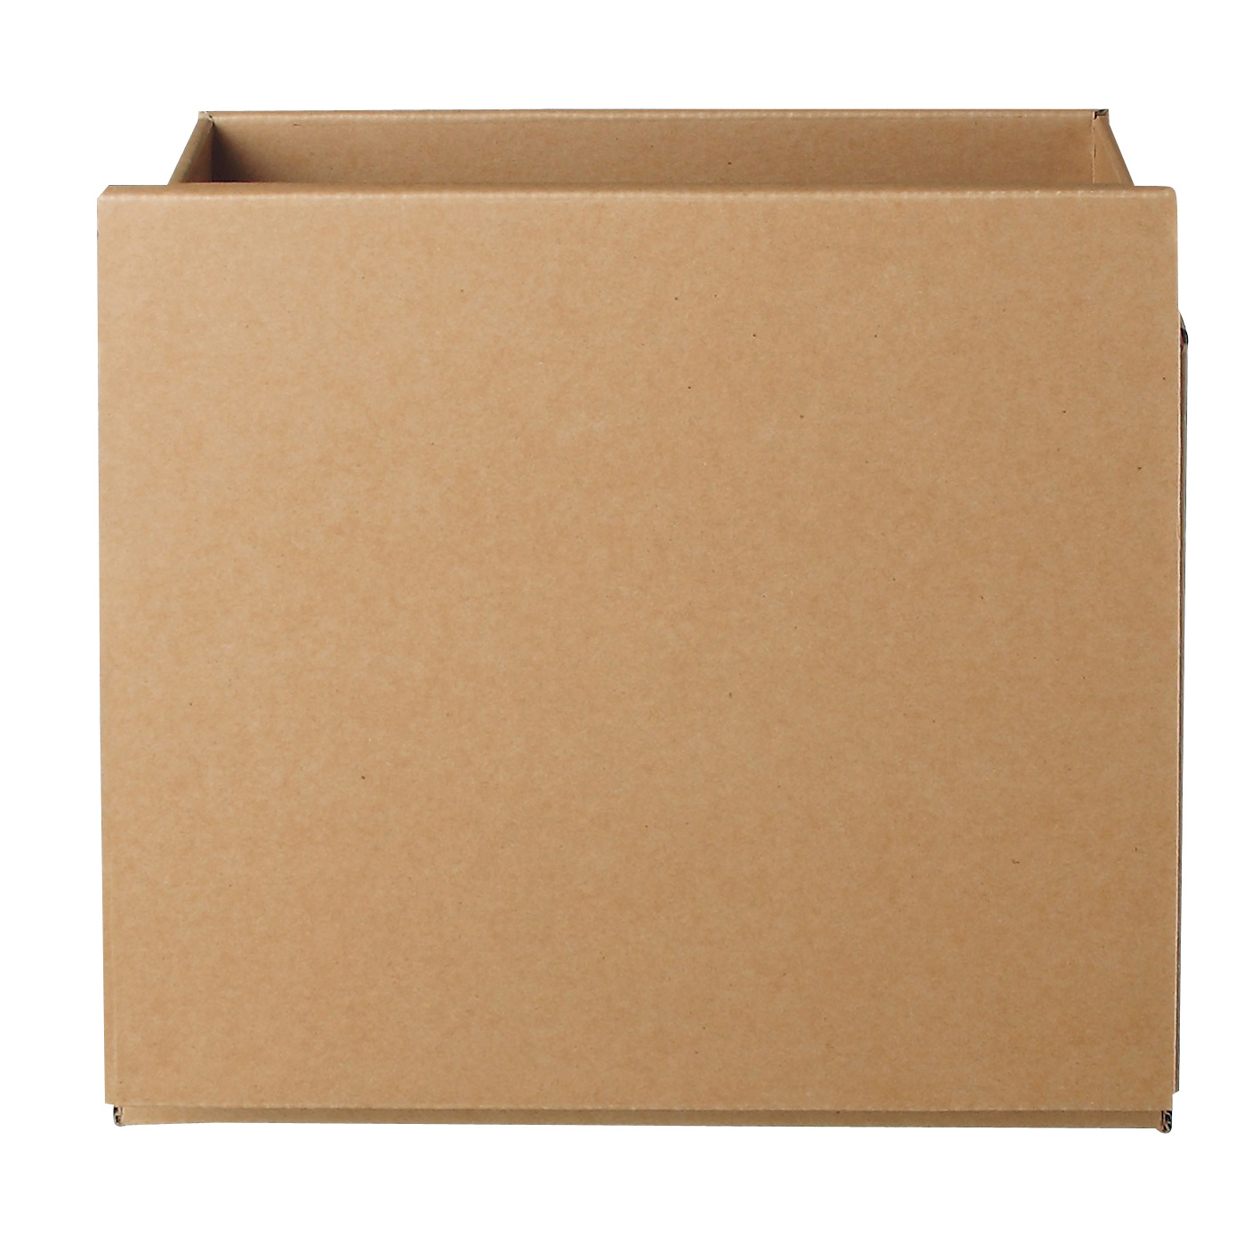 Home Interior Products For Sale Pulp Board Box Cardboard Box W34 D27 H34cm Muji